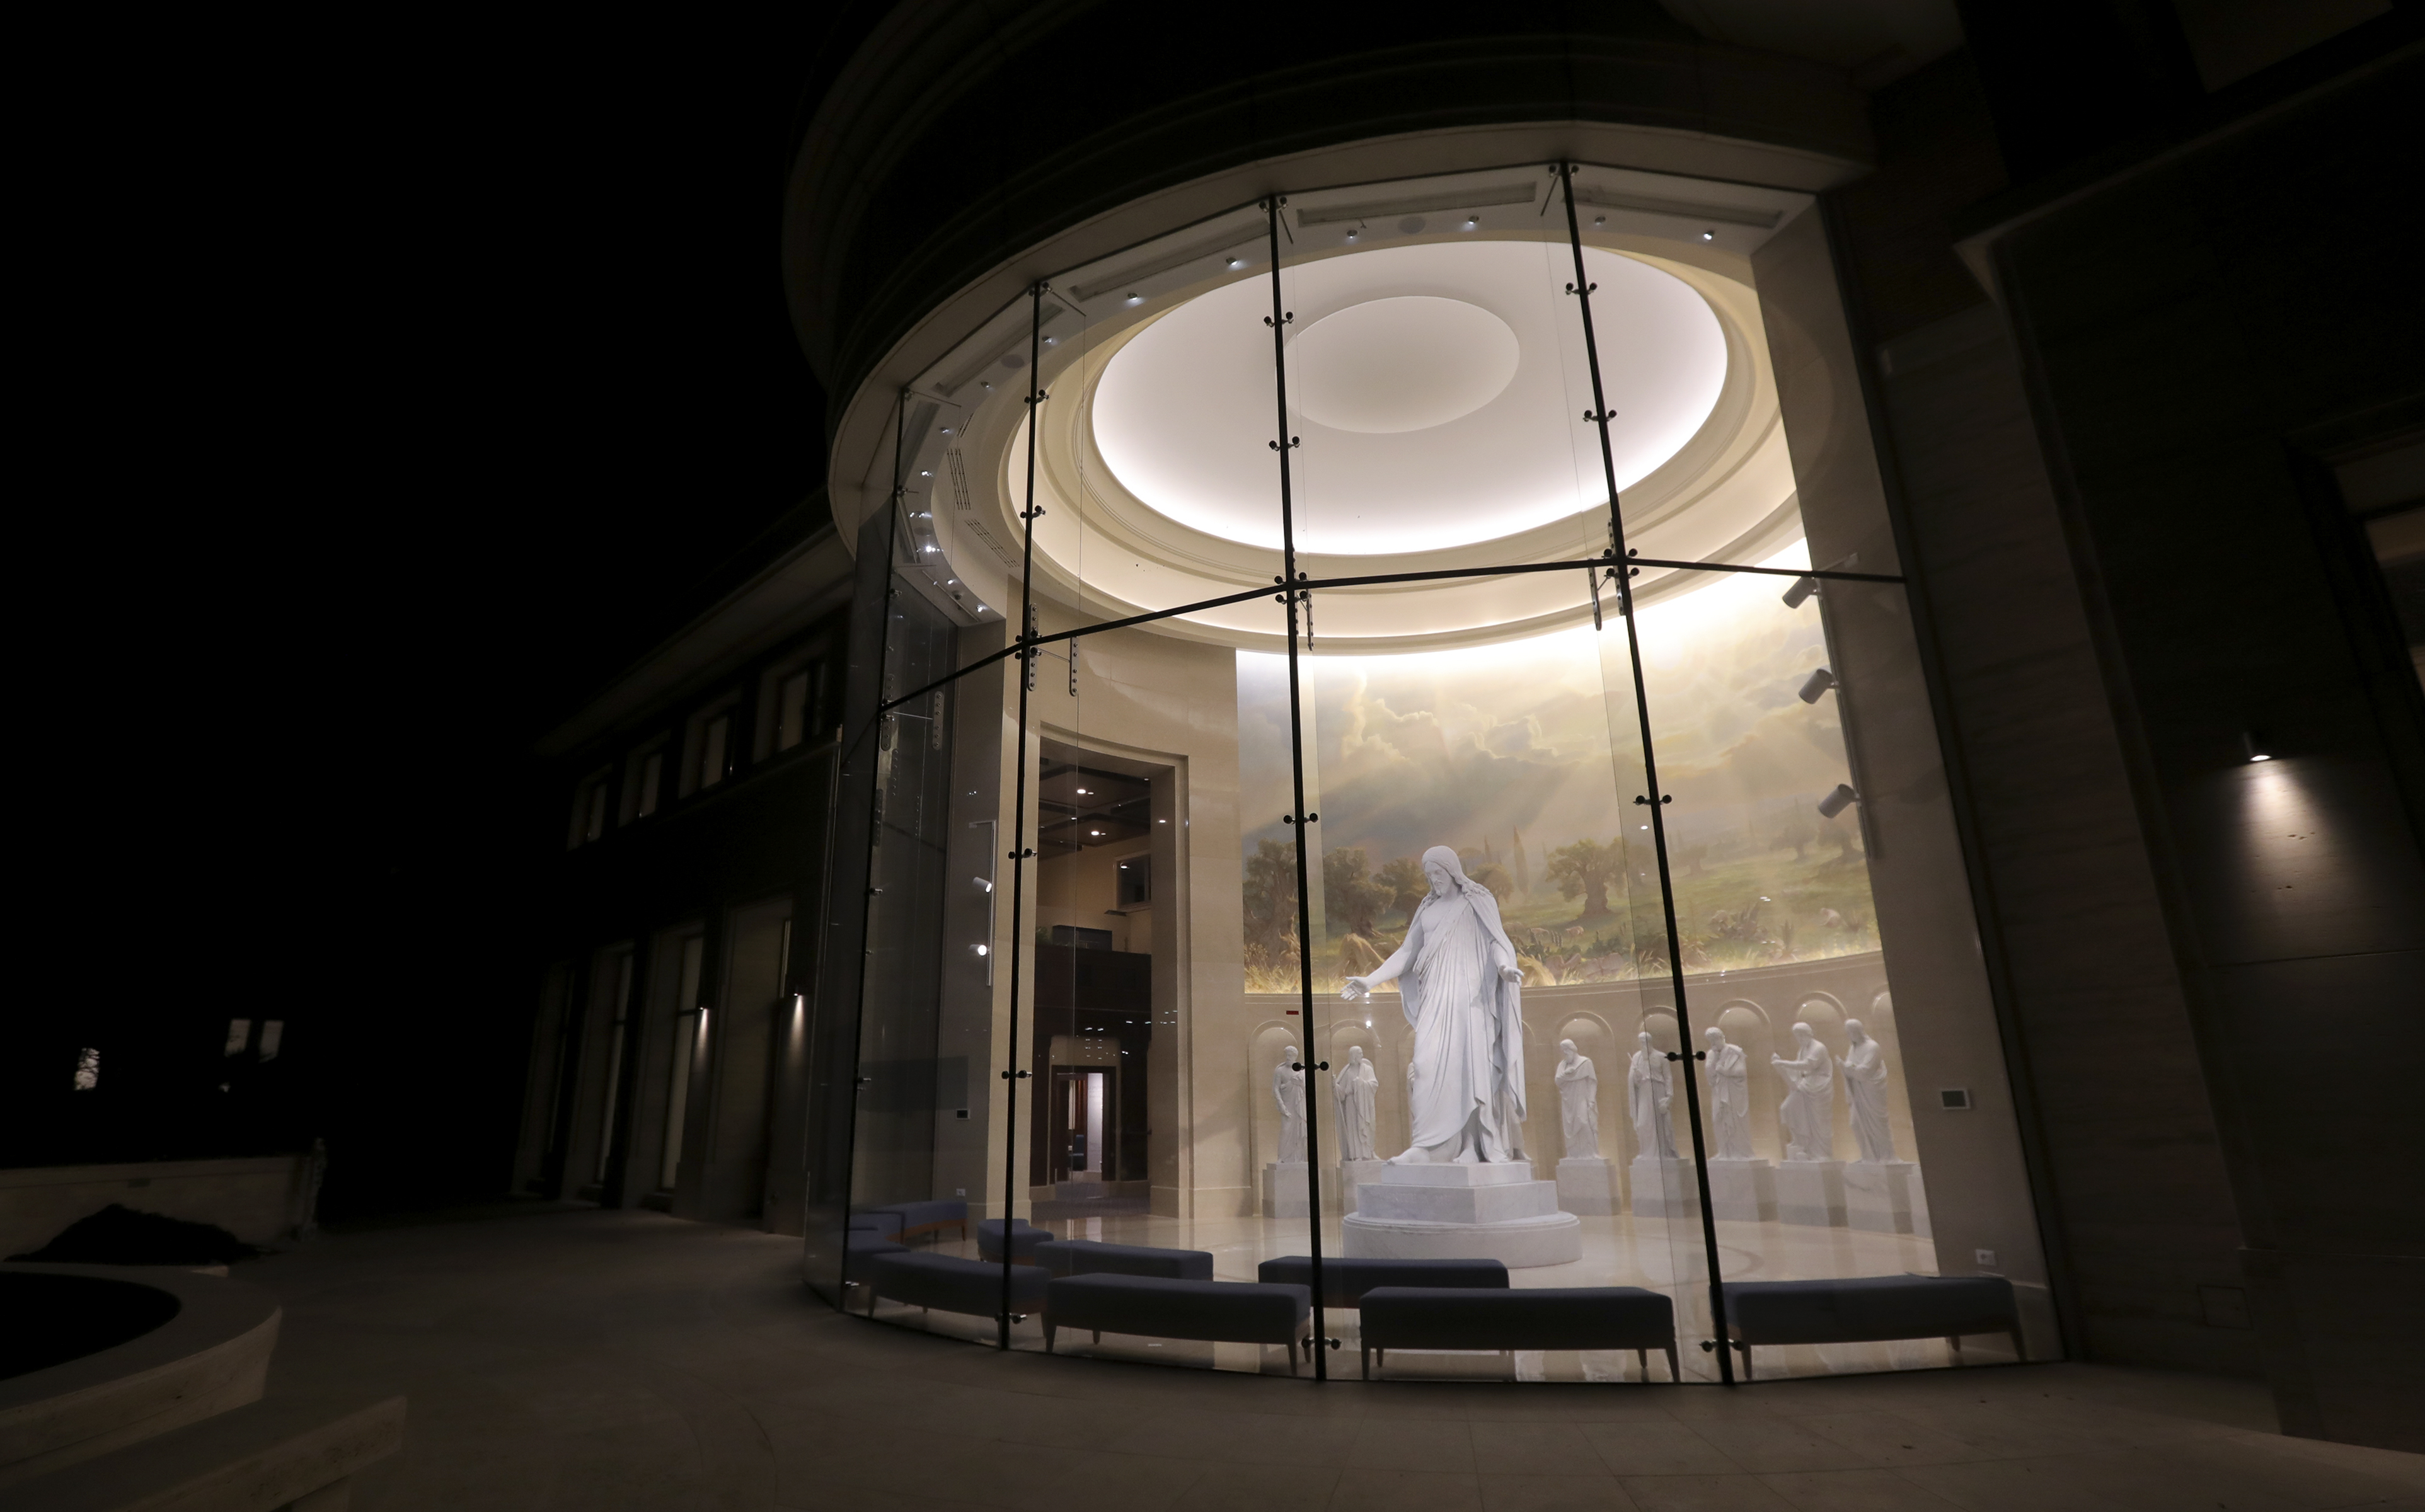 The Christus statue welcomes people to the Visitors' Center across from the Rome Temple in Rome, Italy, on Friday, Nov. 16, 2018.